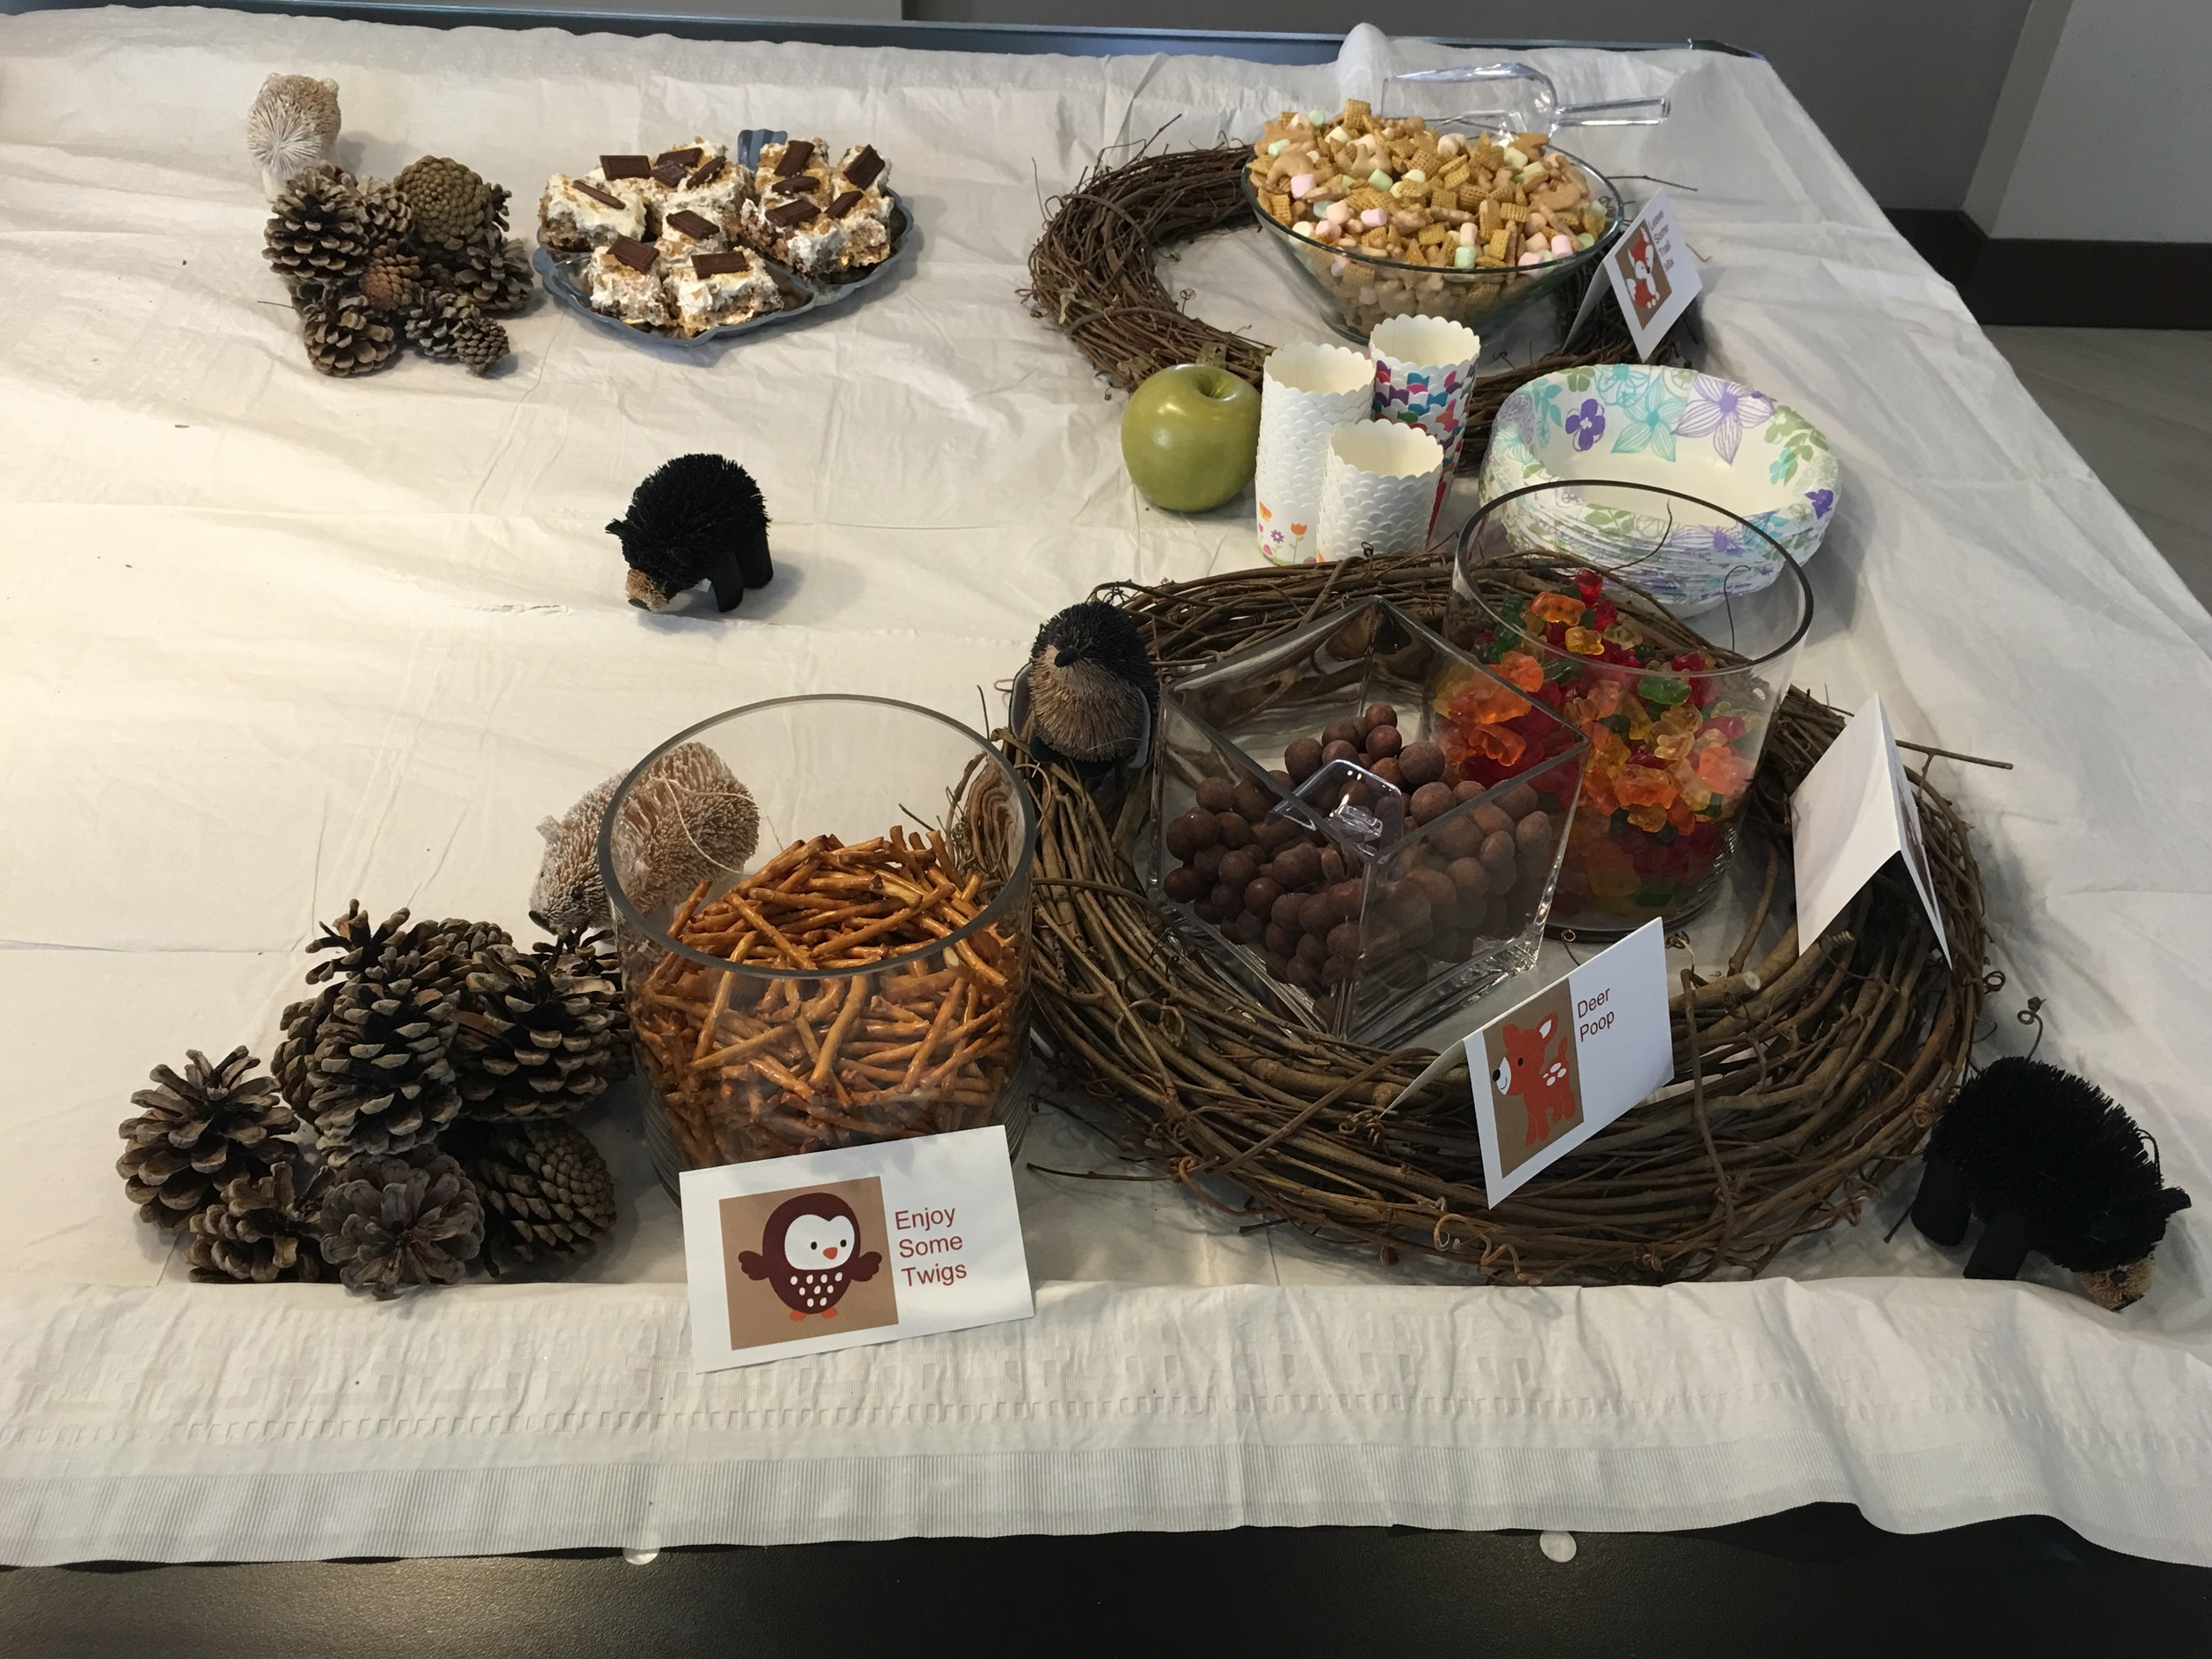 fun woodland snacks accented with wreaths (my brother's idea! he styled it great)